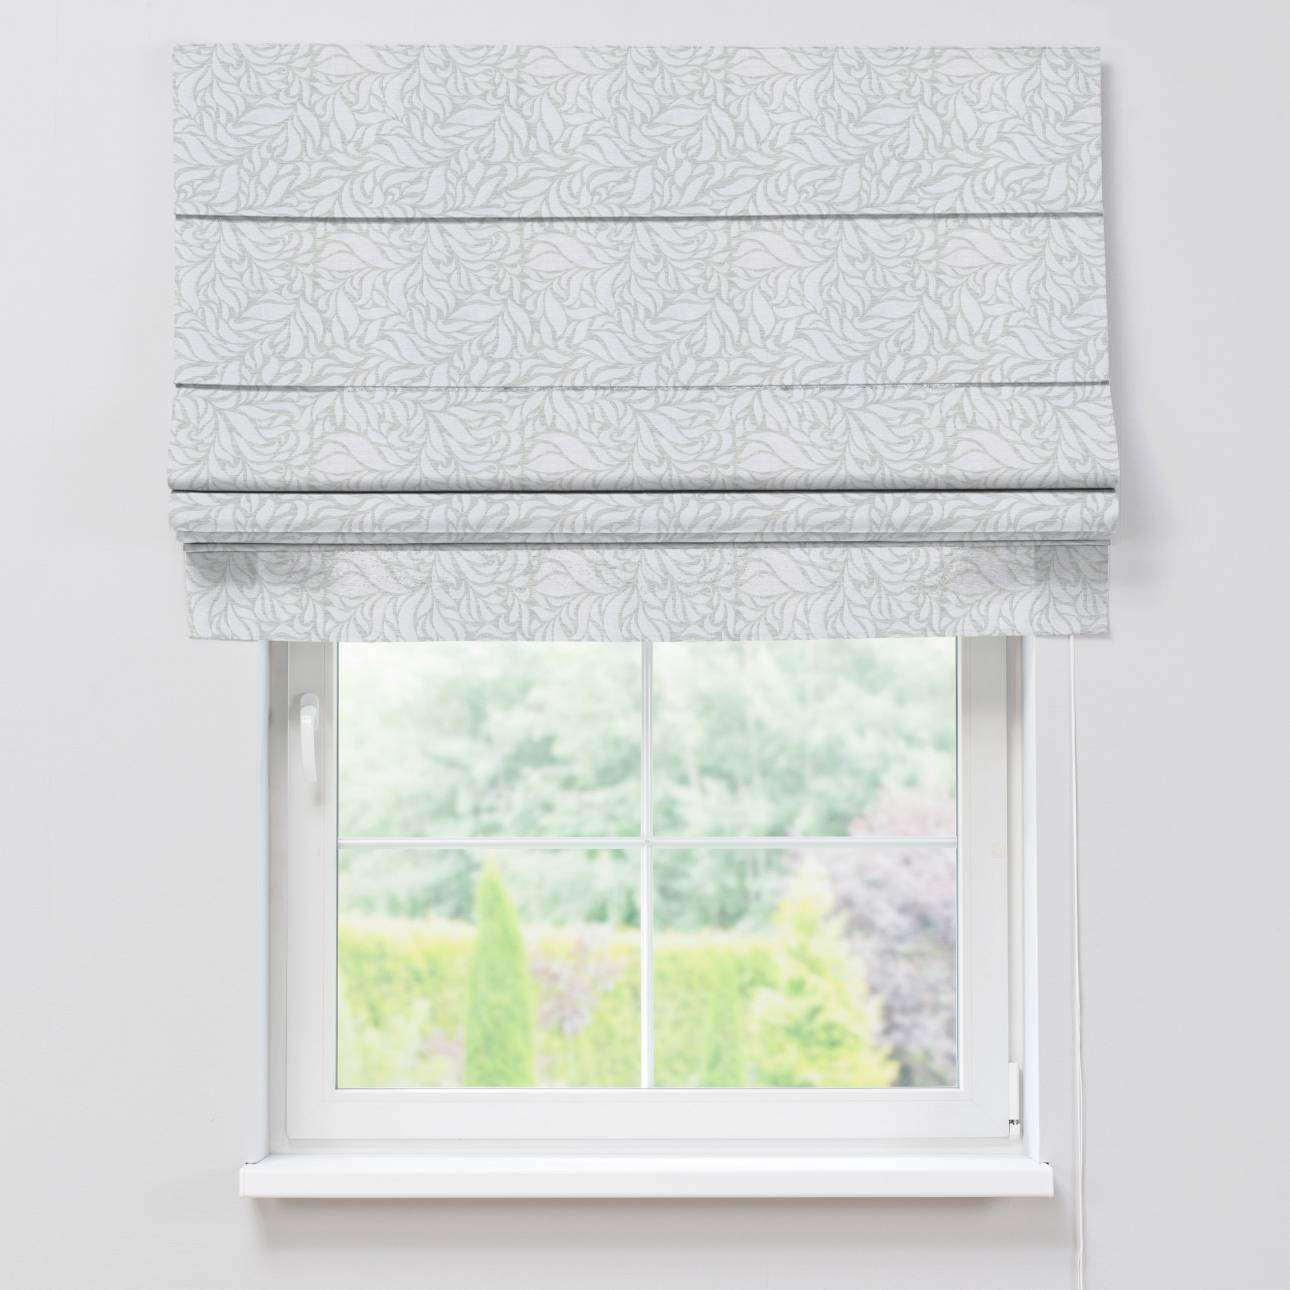 Padva roman blind  in collection Venice, fabric: 140-50